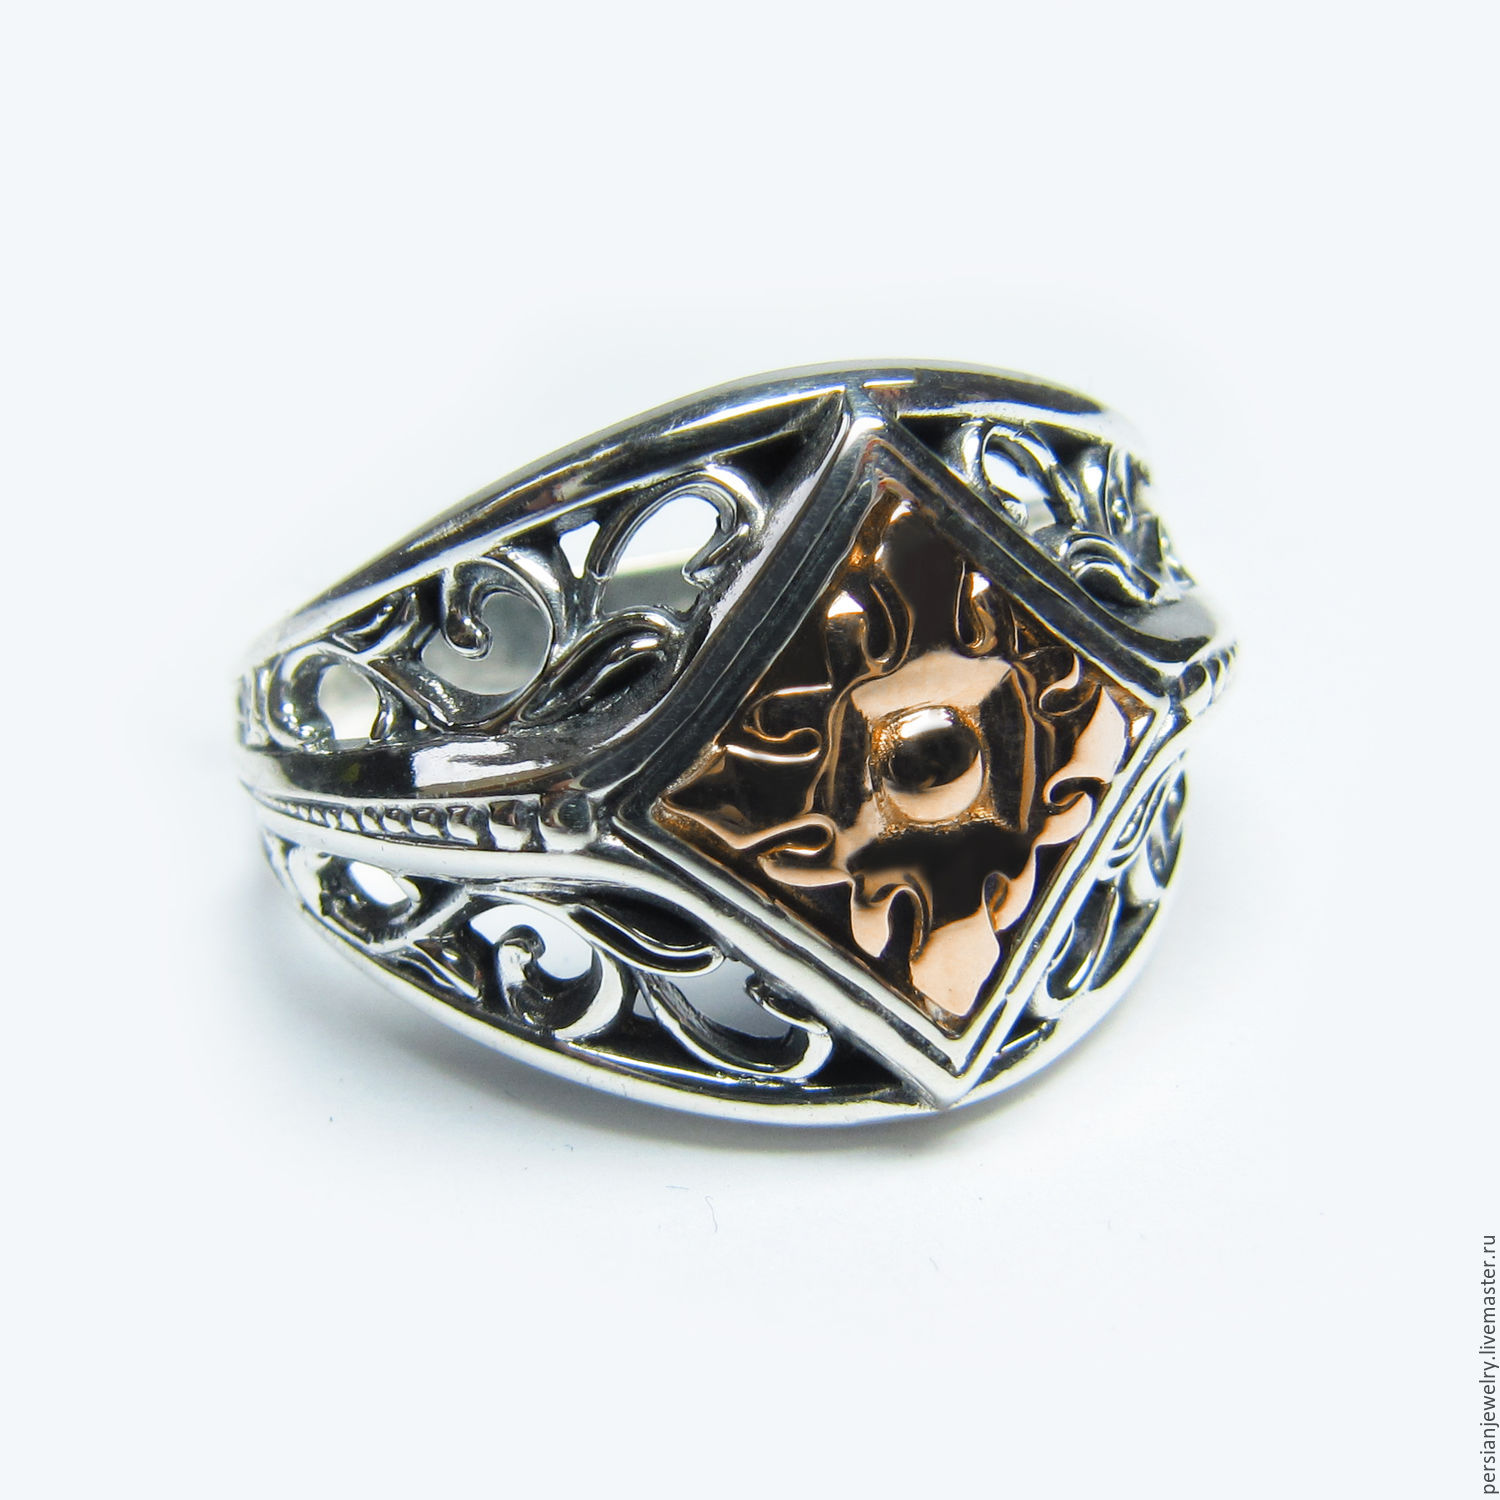 Ring made of silver and gold 'Flower Flora', Rings, Sevastopol,  Фото №1